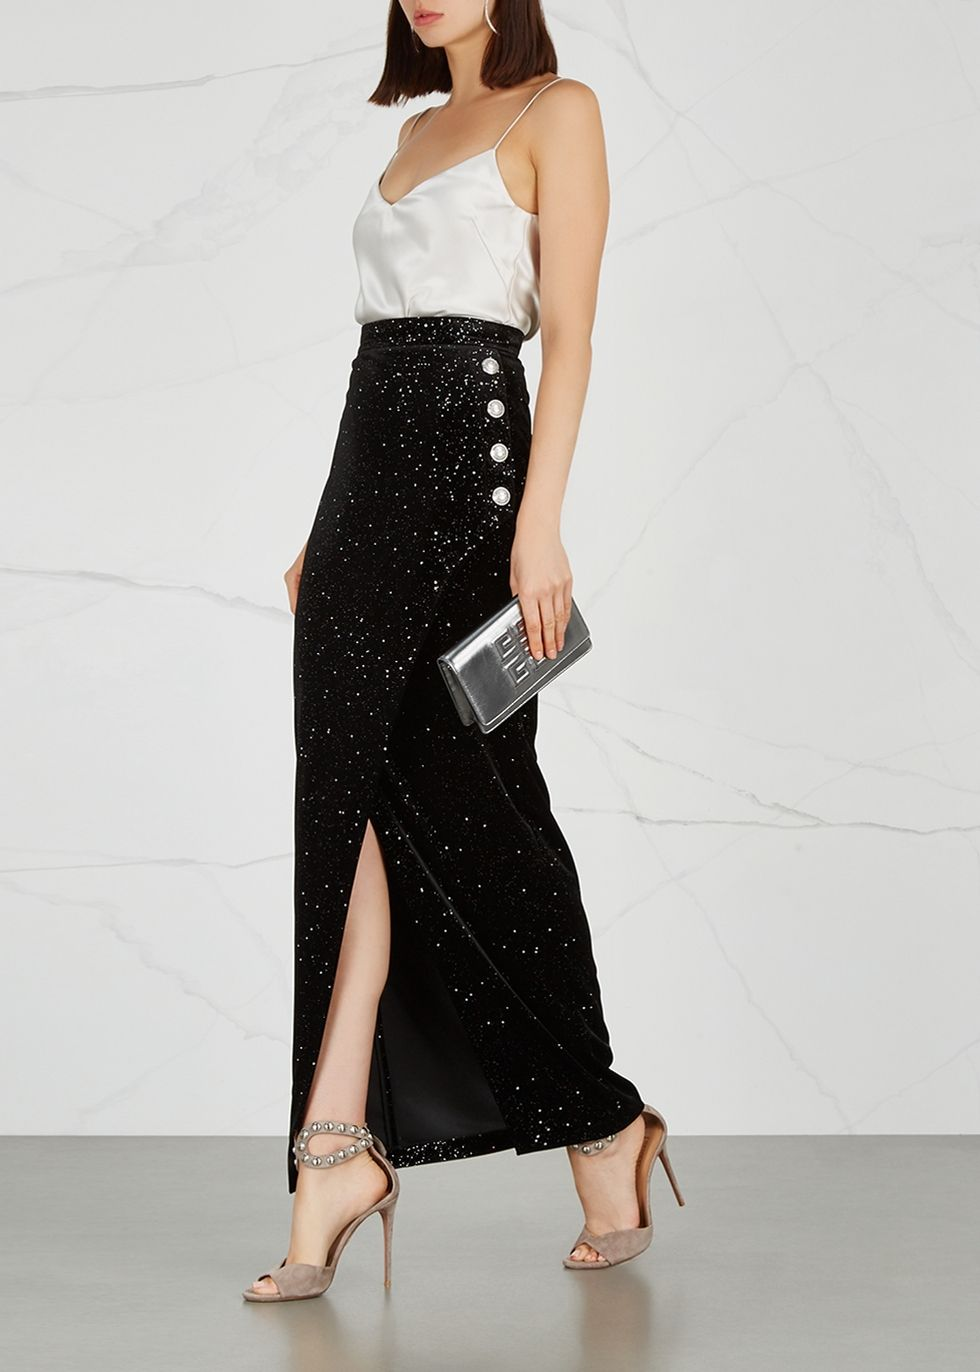 Communication on this topic: 33 Shamelessly Sparkly Ways to Wear Sequins , 33-shamelessly-sparkly-ways-to-wear-sequins/